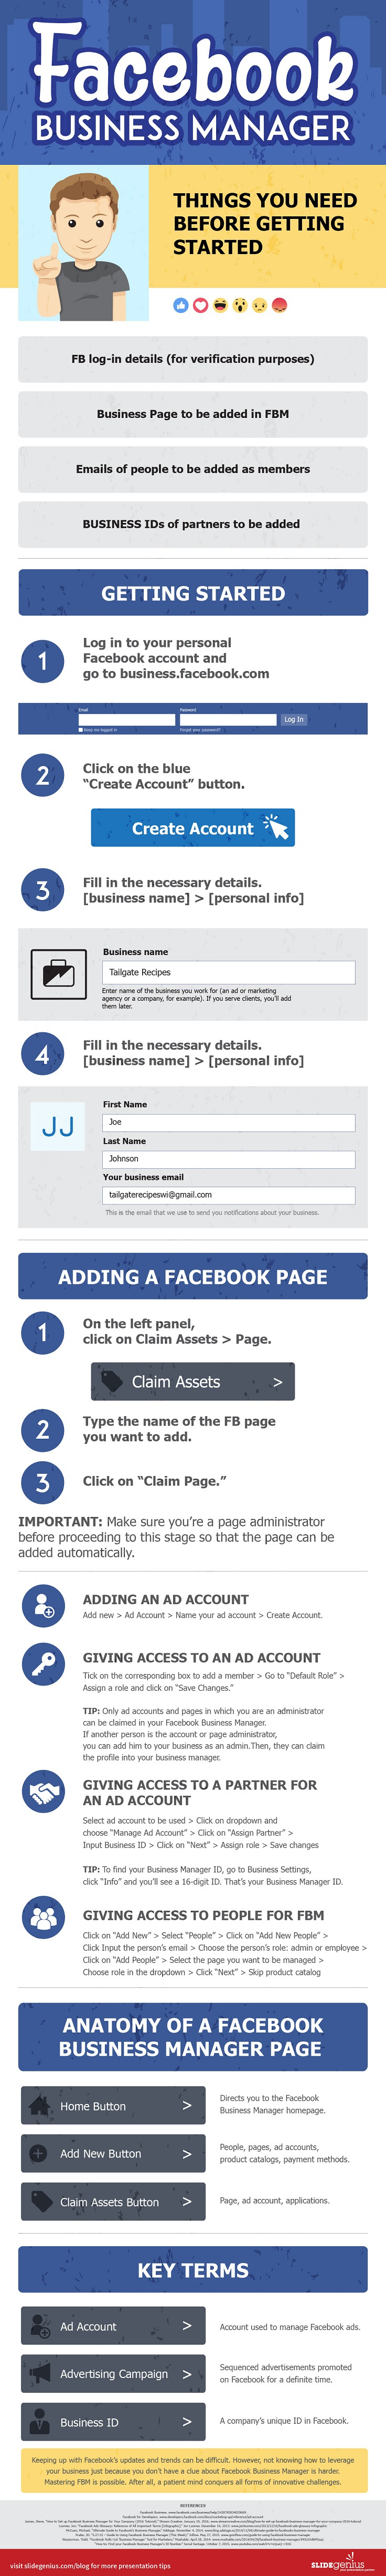 A Step-by-Step Guide to Facebook Business Manager - infographic